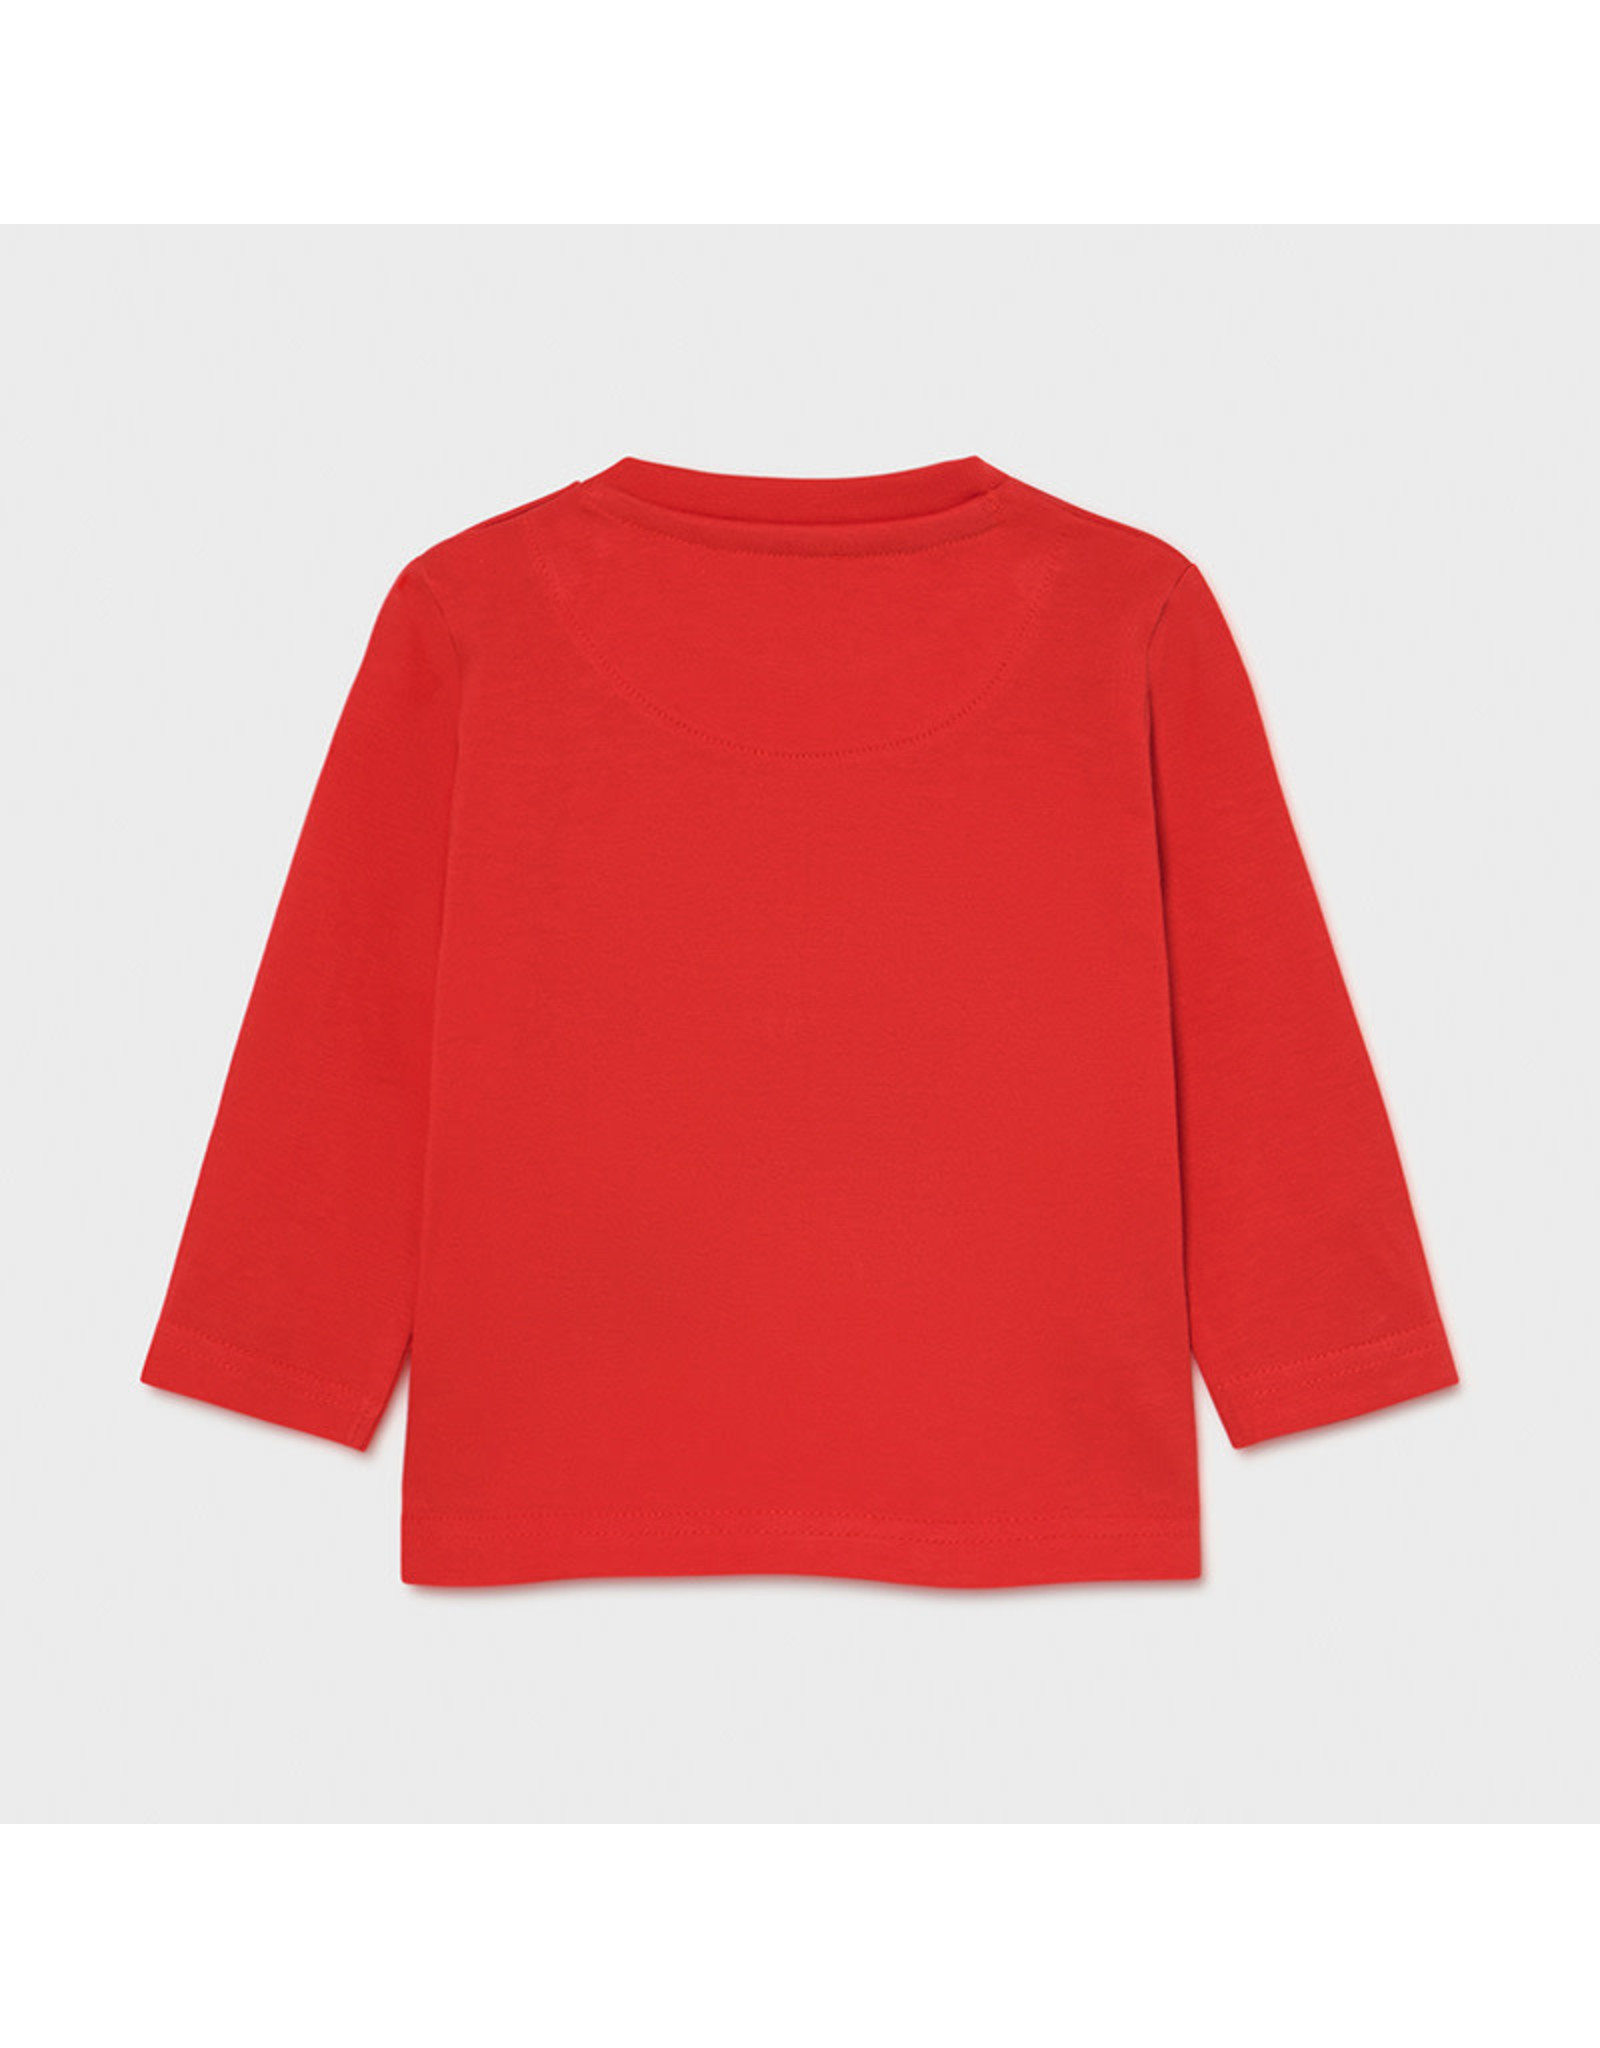 Mayoral Long Sleeve T-Shirt - Cyber Red